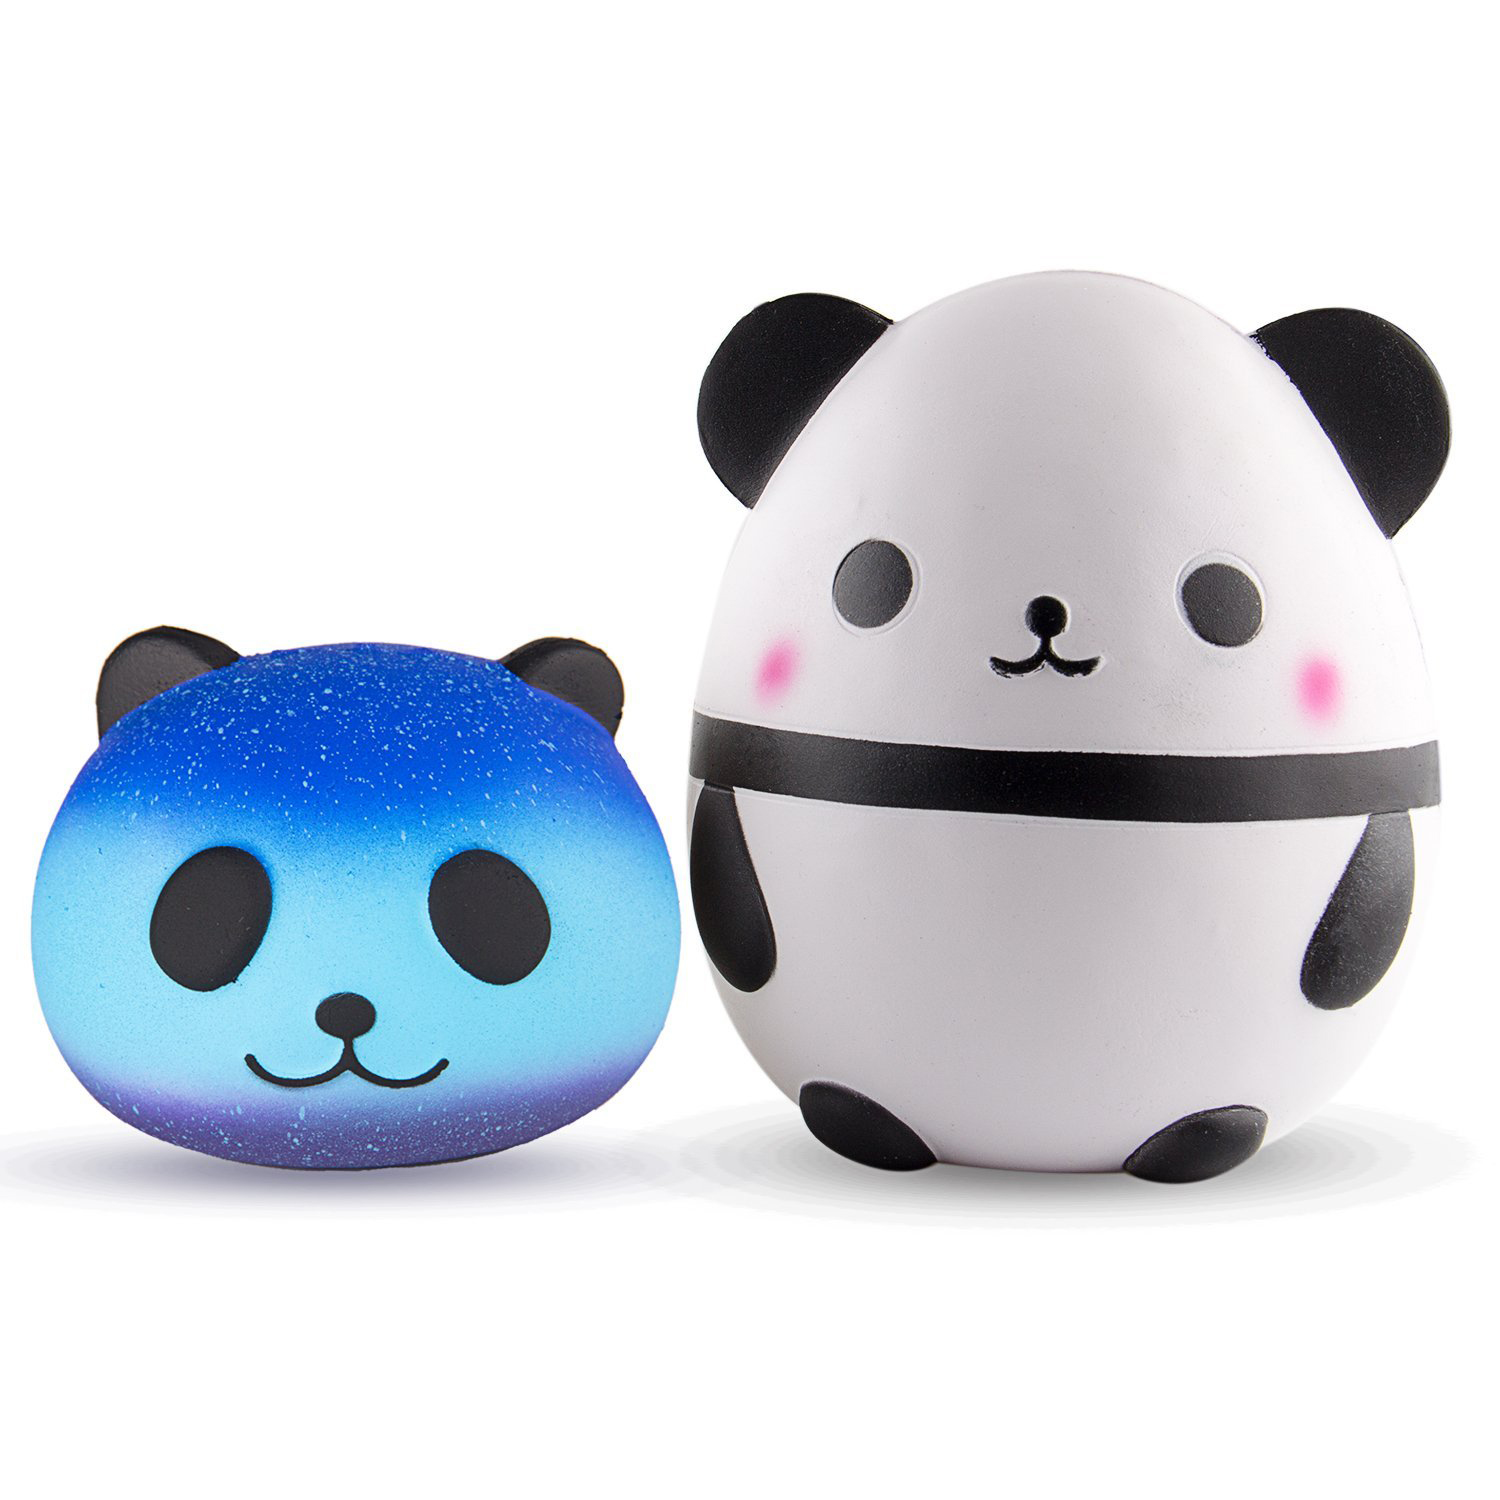 2018 New Jumbo Squishy Toy, Jumbo Cute Panda Egg with Star Panda Head Cream Scented Easter Squishy Very Slow Rising Kids Toys